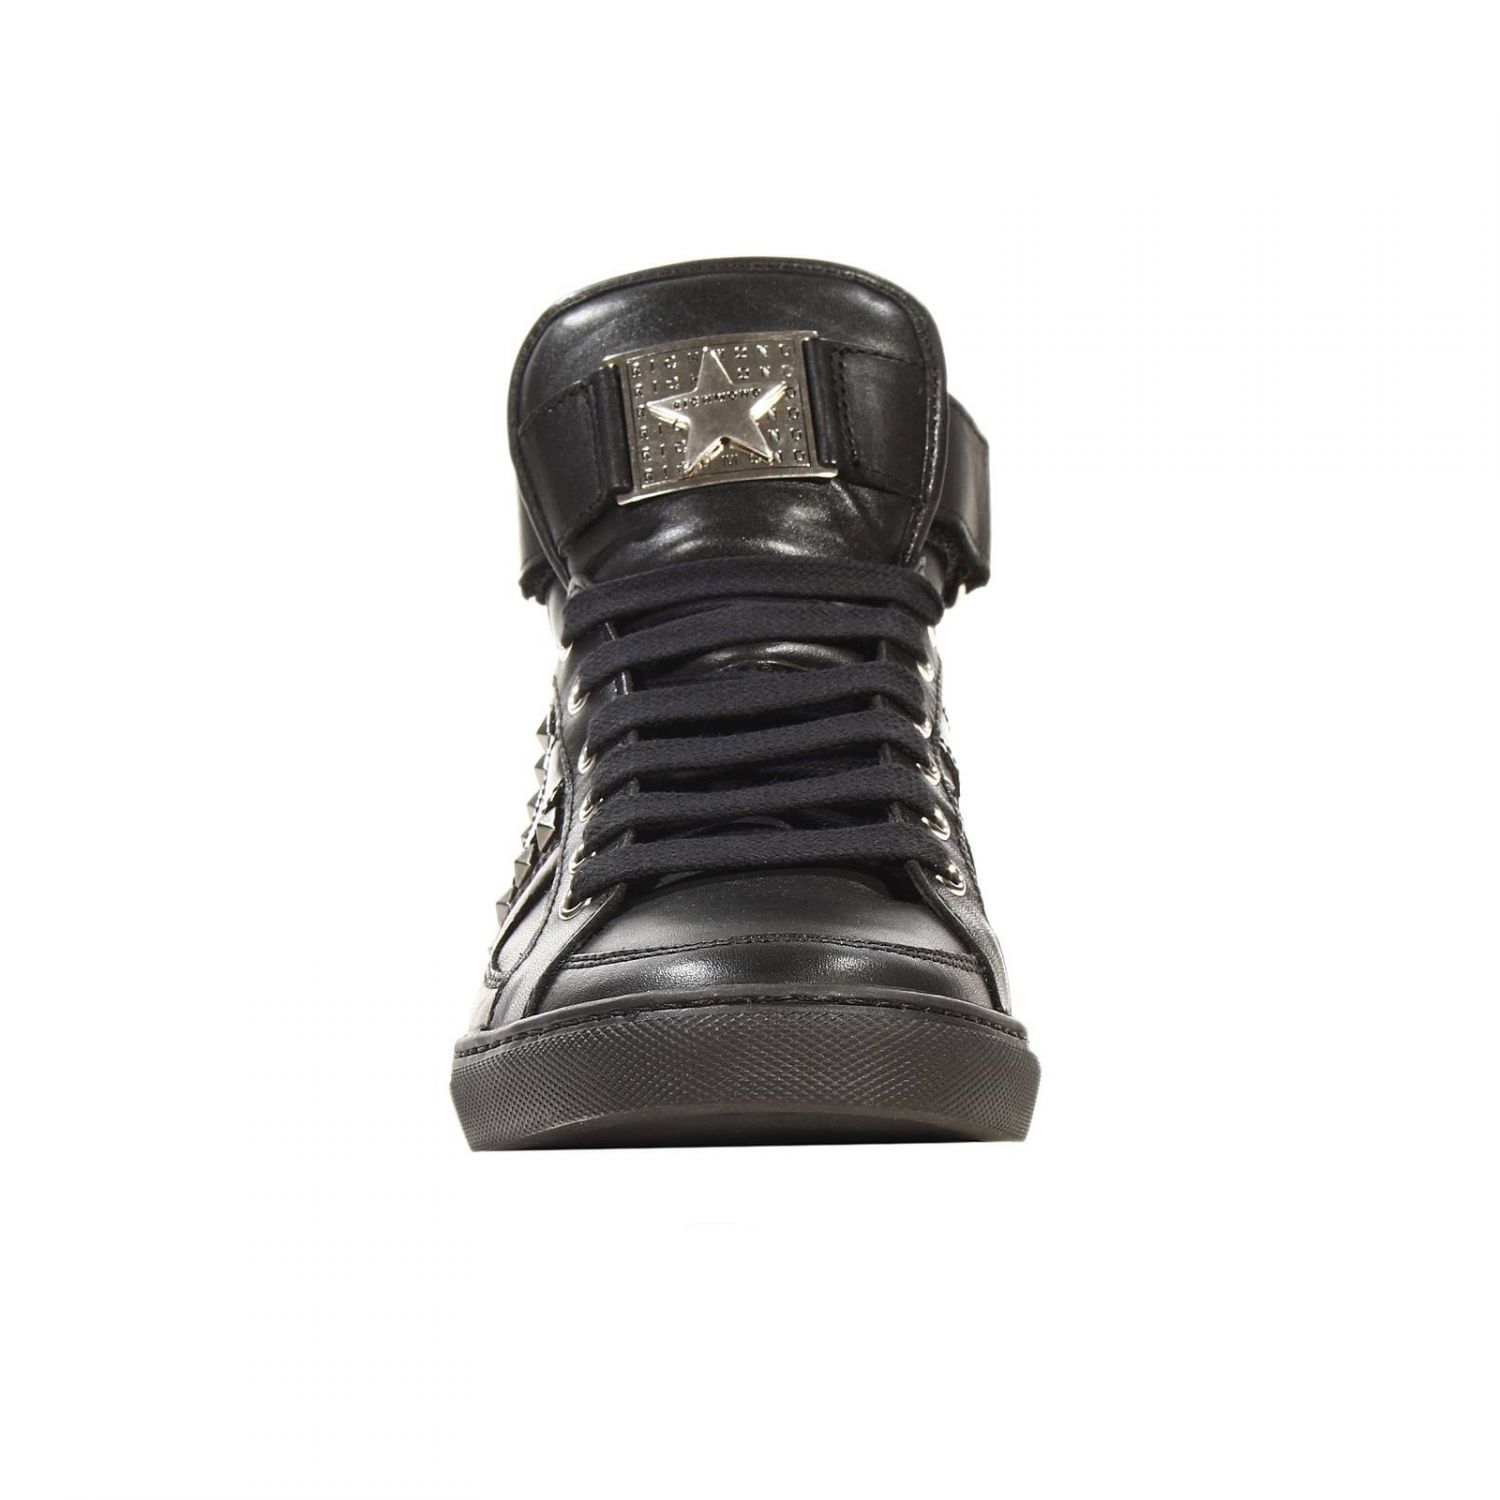 John Richmond Sneakers Steffy Ankle Boot With Studs In